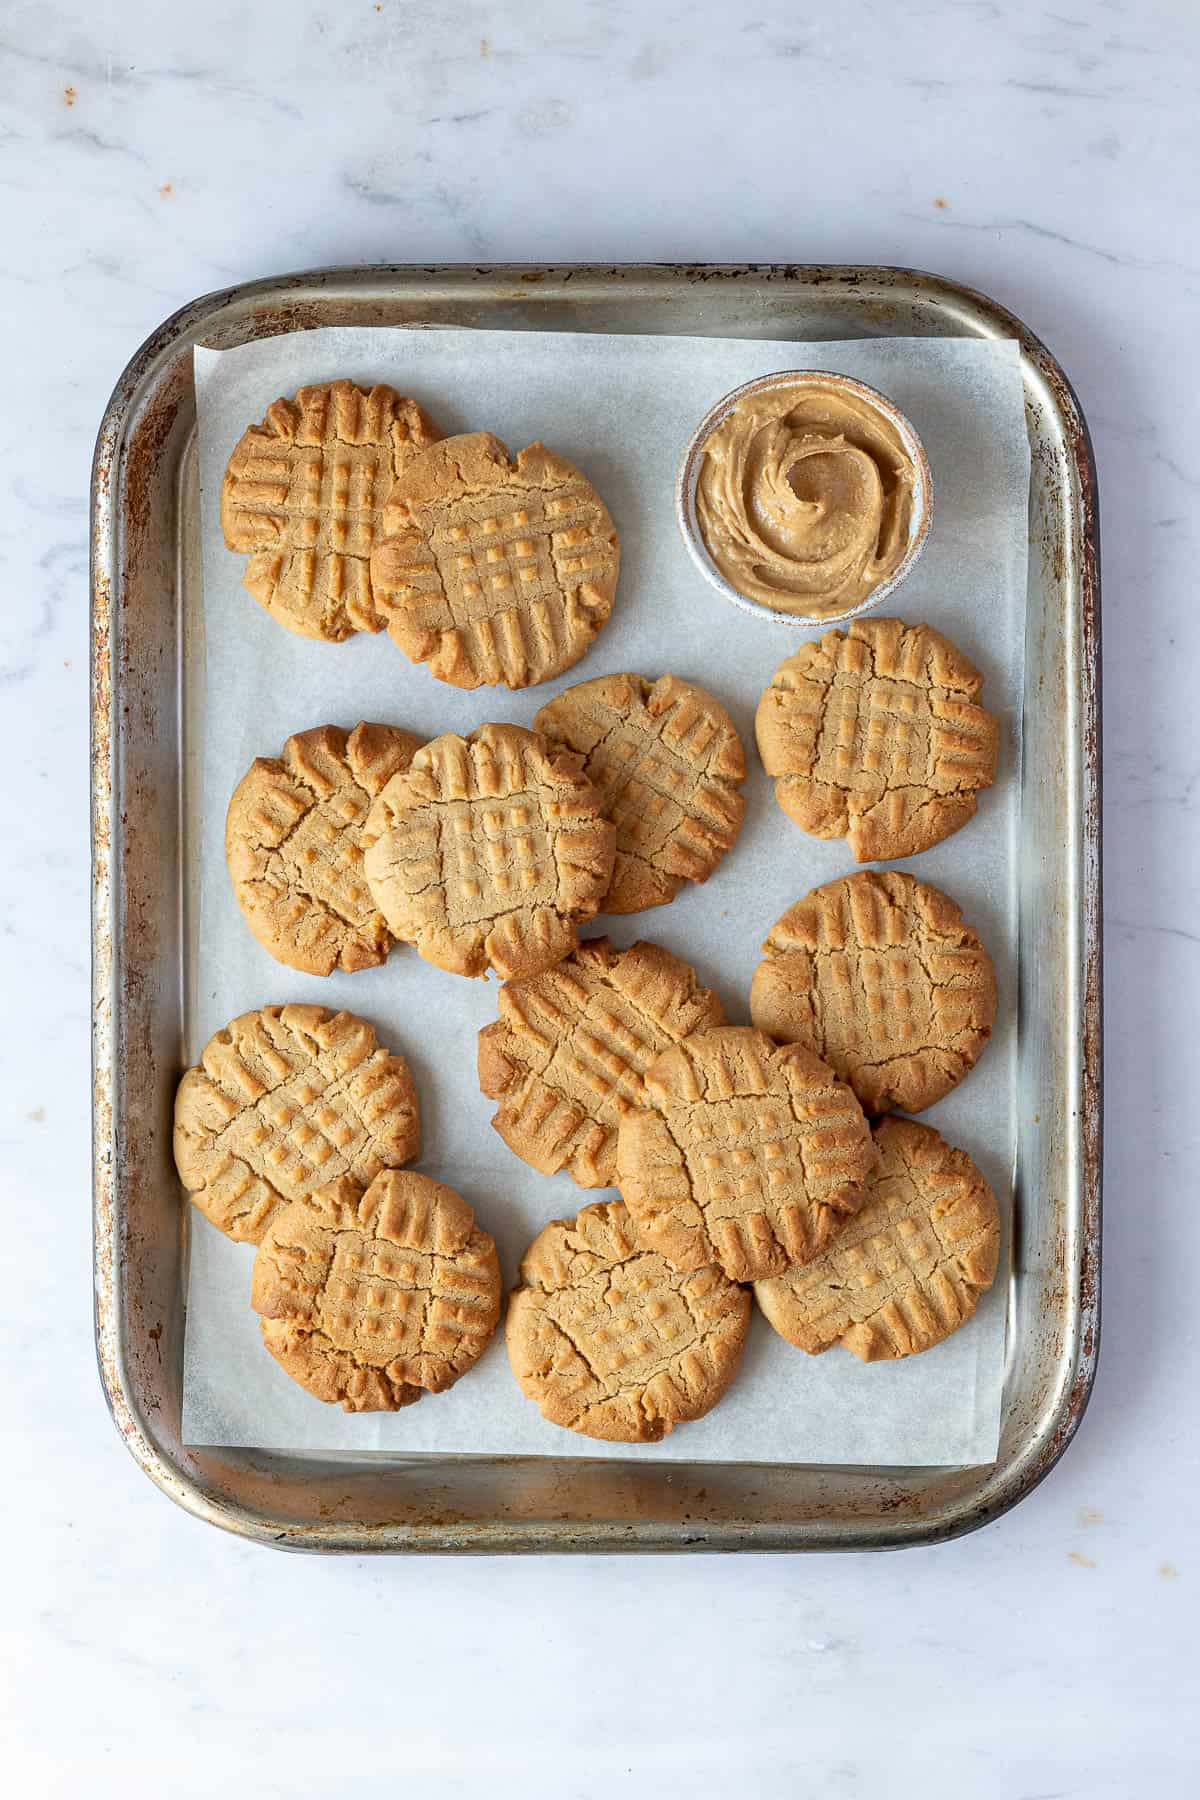 Vegan peanut butter cookies with a bowl of peanut butter on a metal baking sheet.